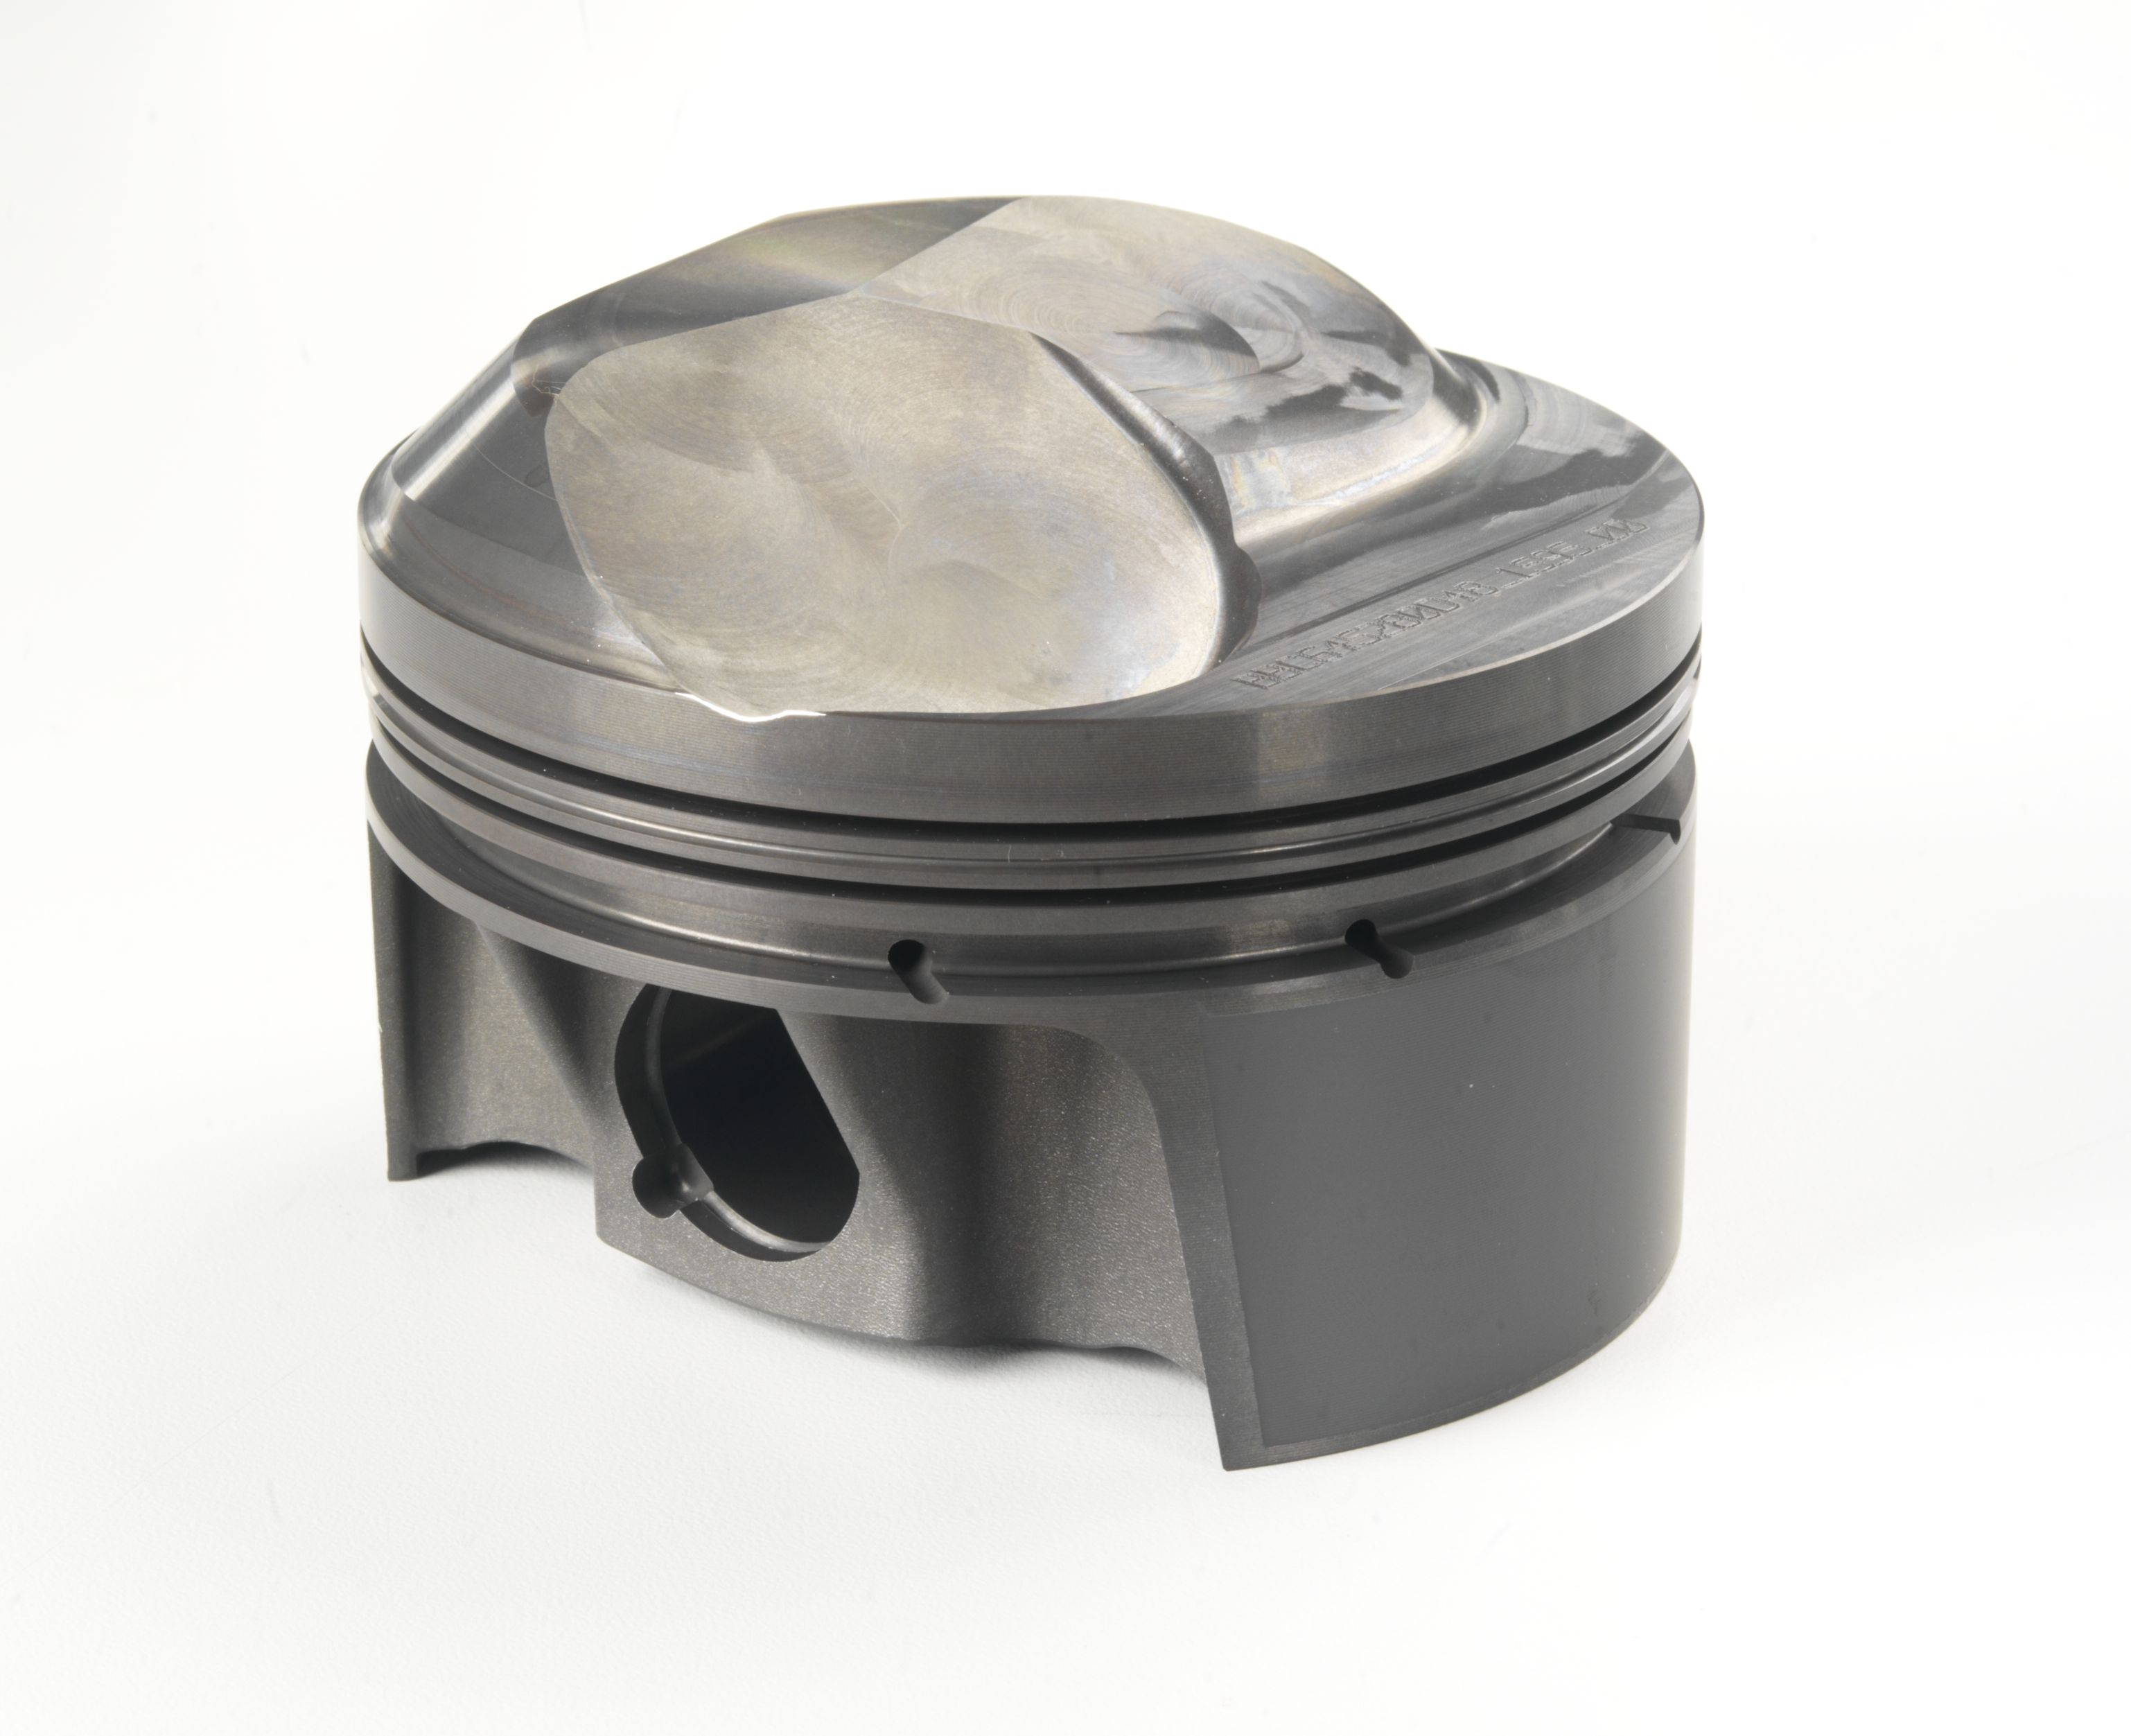 BBC270320D43 Mahle Motorsports Piston For Use With Big Block Chevy Engines  With 4 250 Inch Stroke